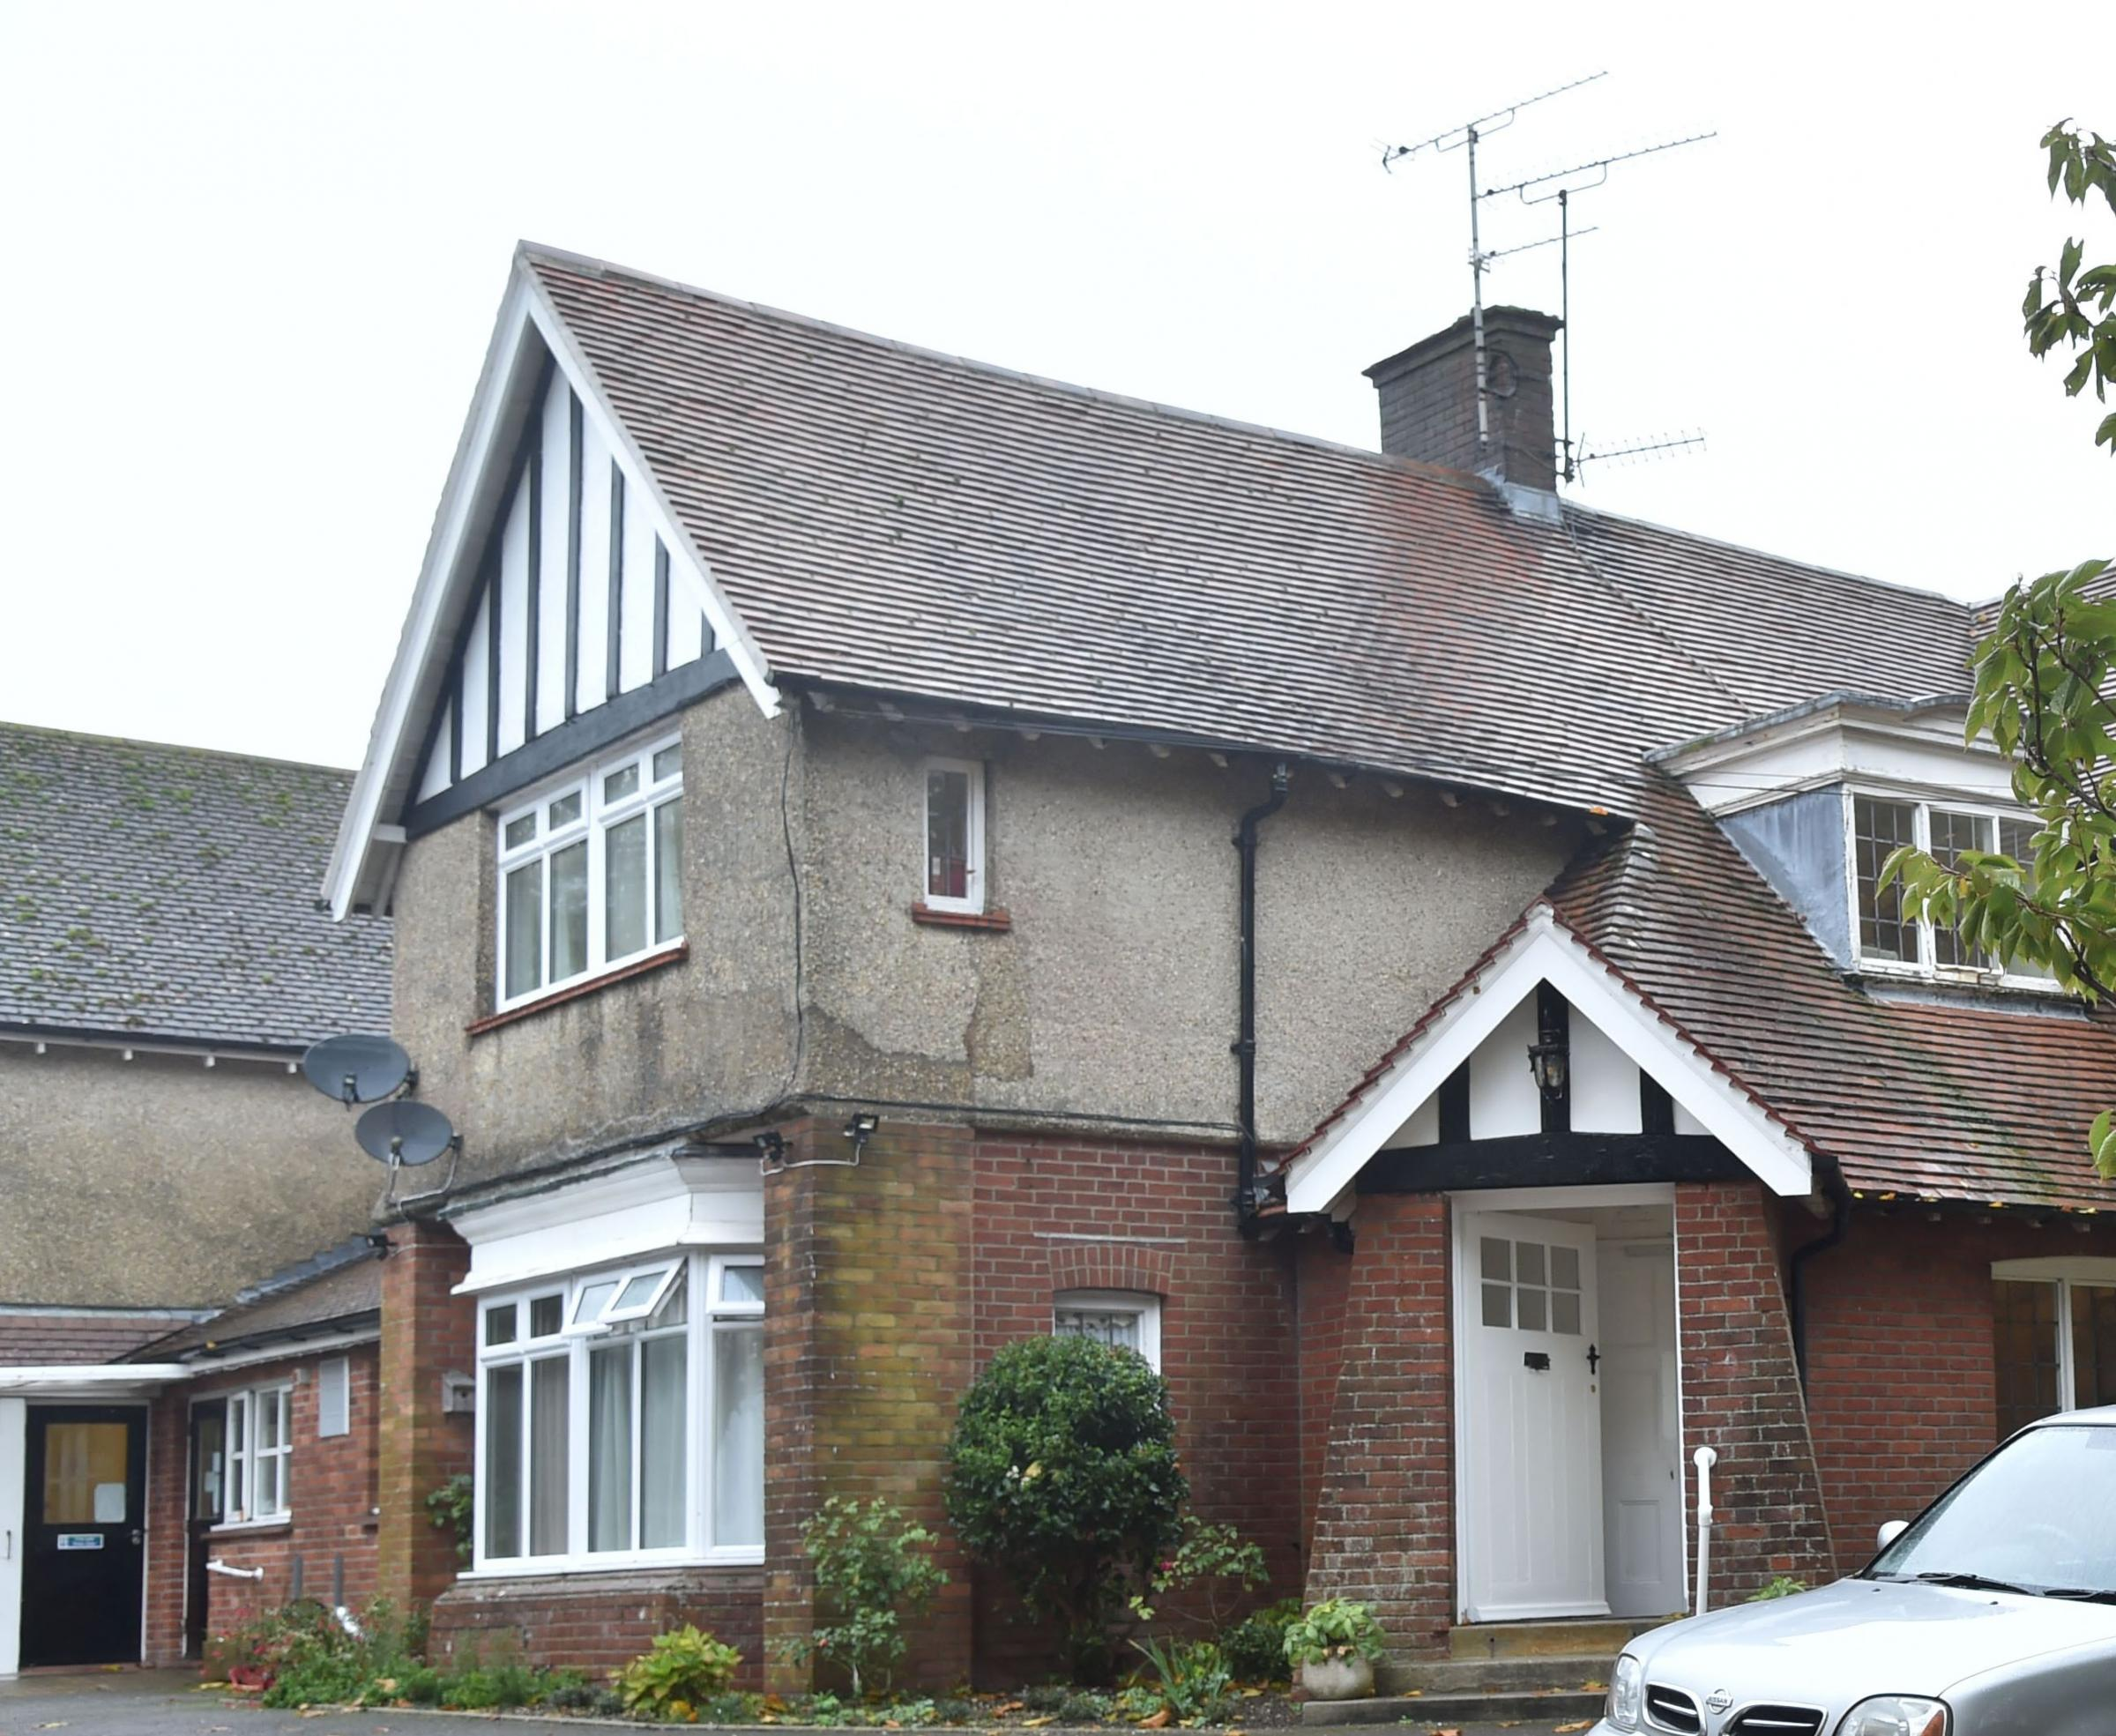 Badbury Care Home Requires Improvement After CQC Report Finds People Put At Risk Of Harm Due To Unsafe Medicine Procedures And Were Left With Little Do